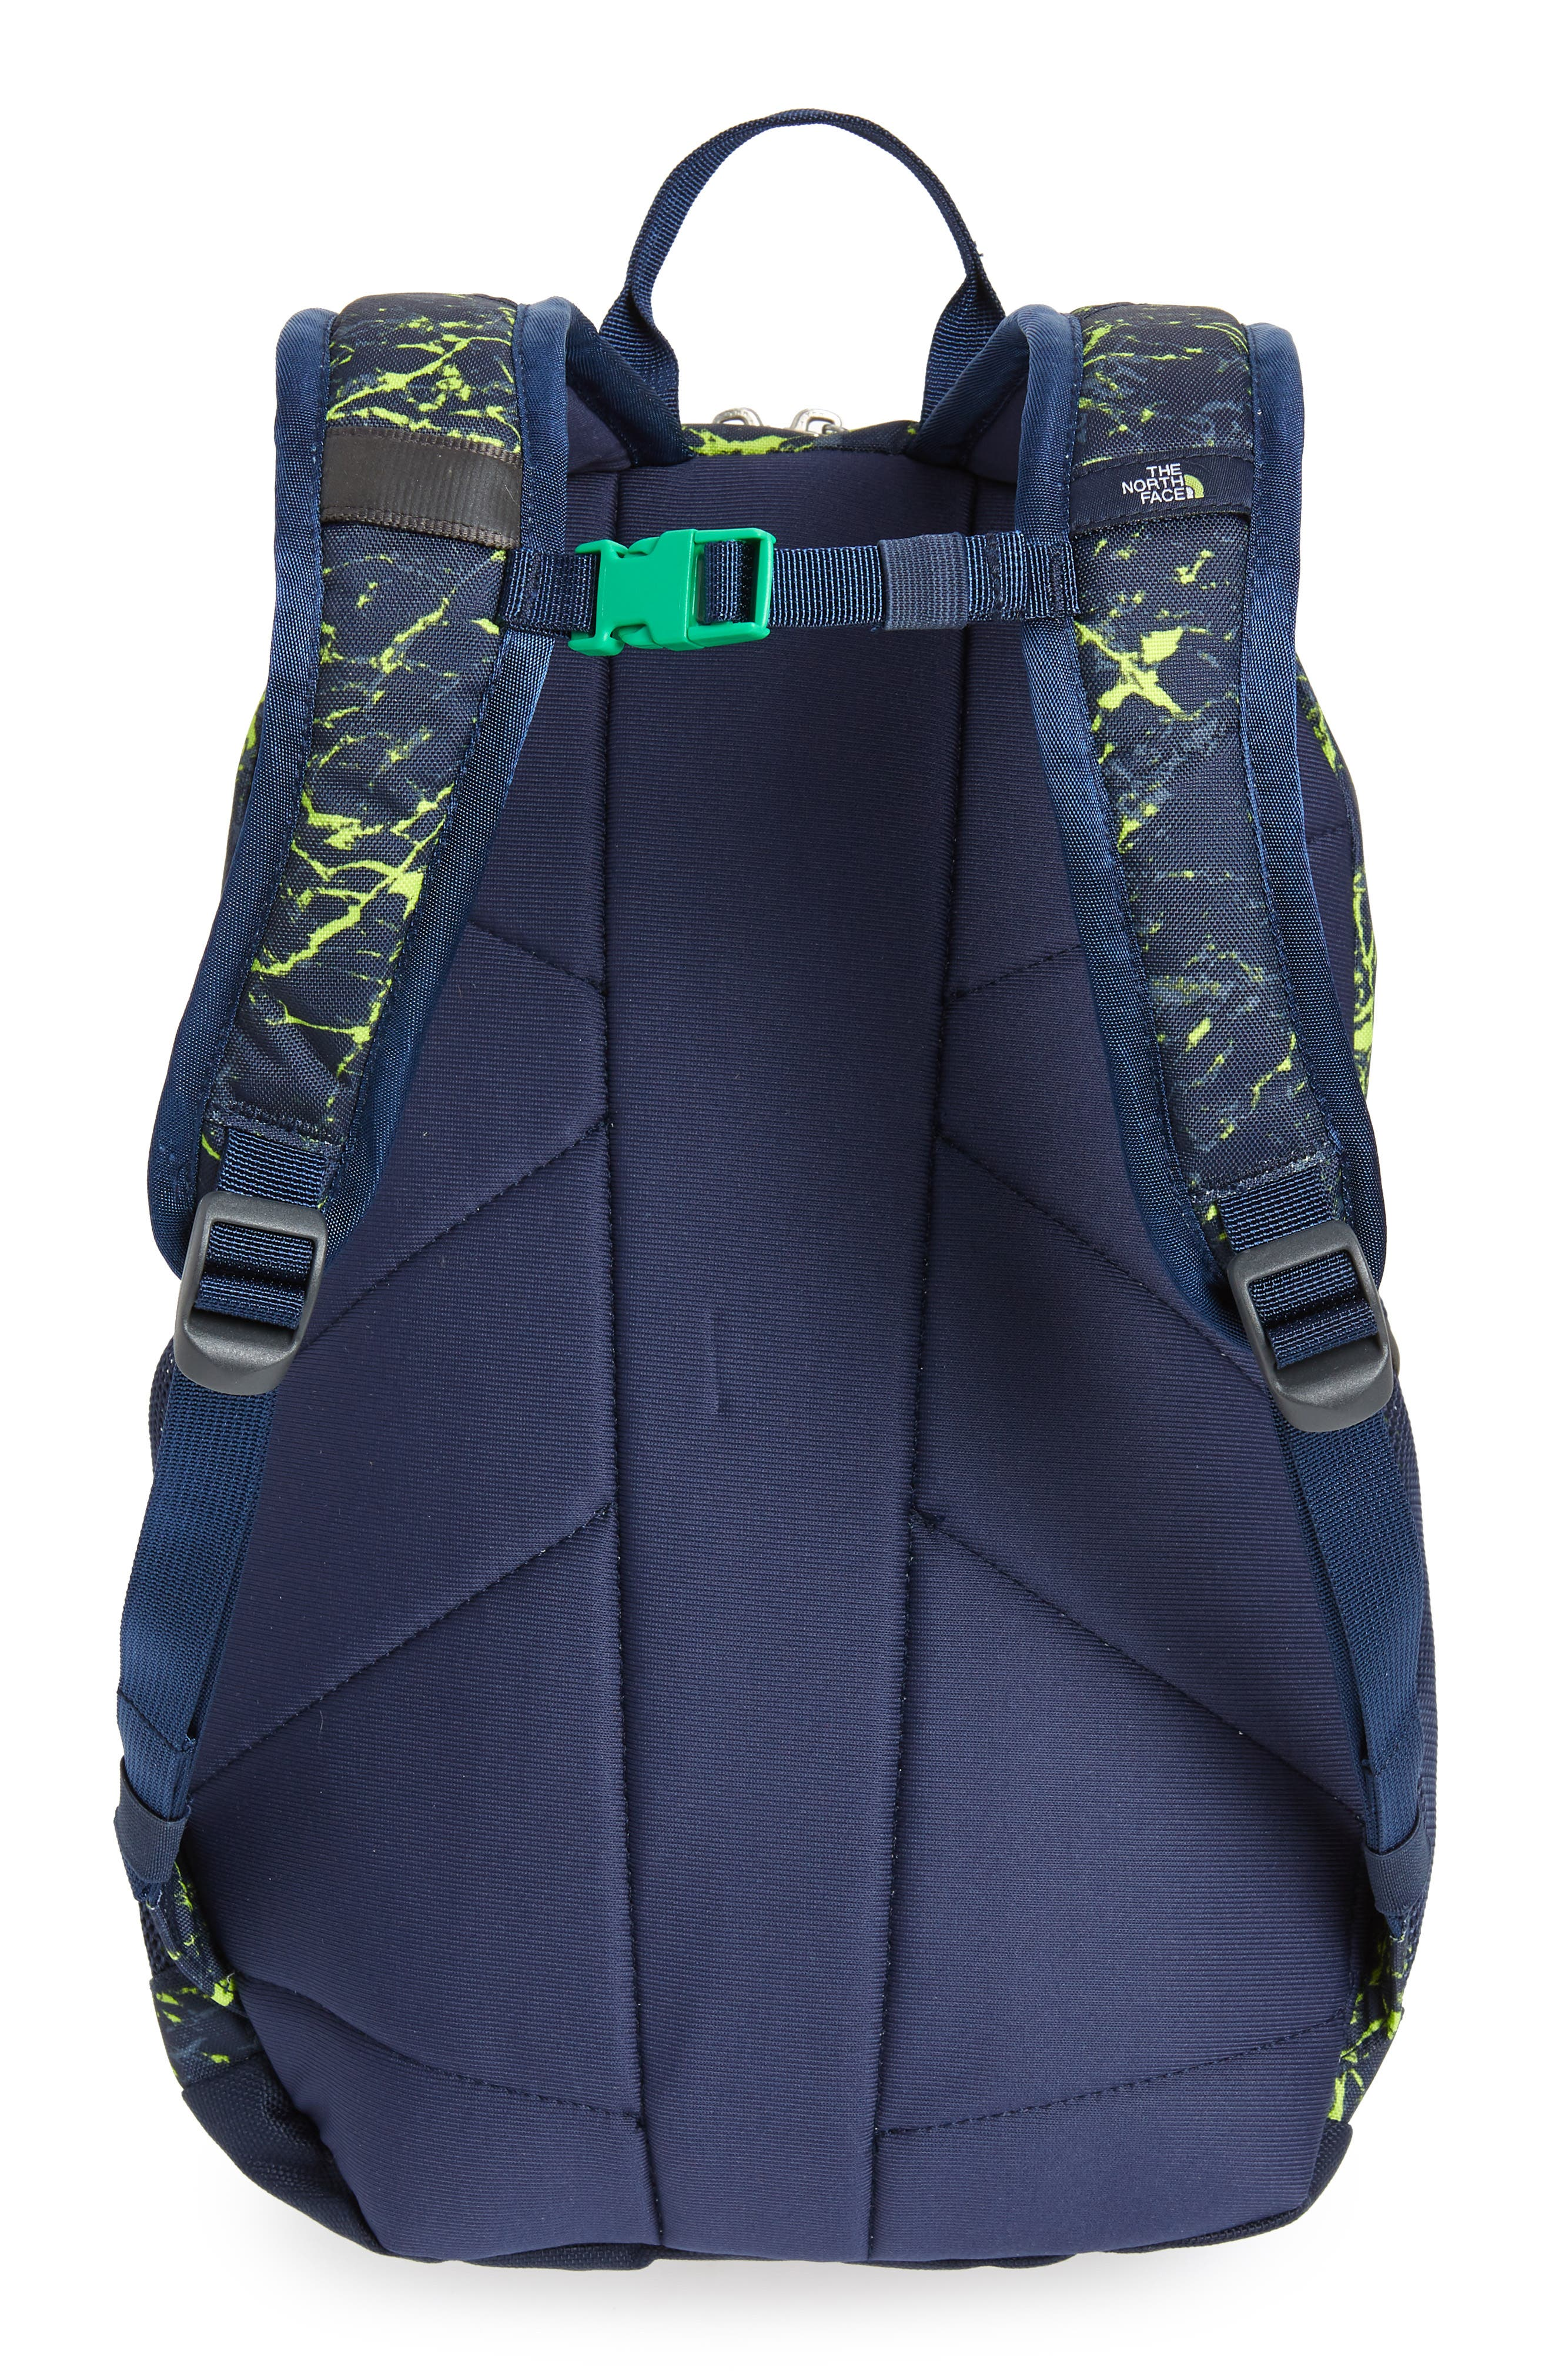 Recon Squash Backpack,                             Alternate thumbnail 2, color,                             401